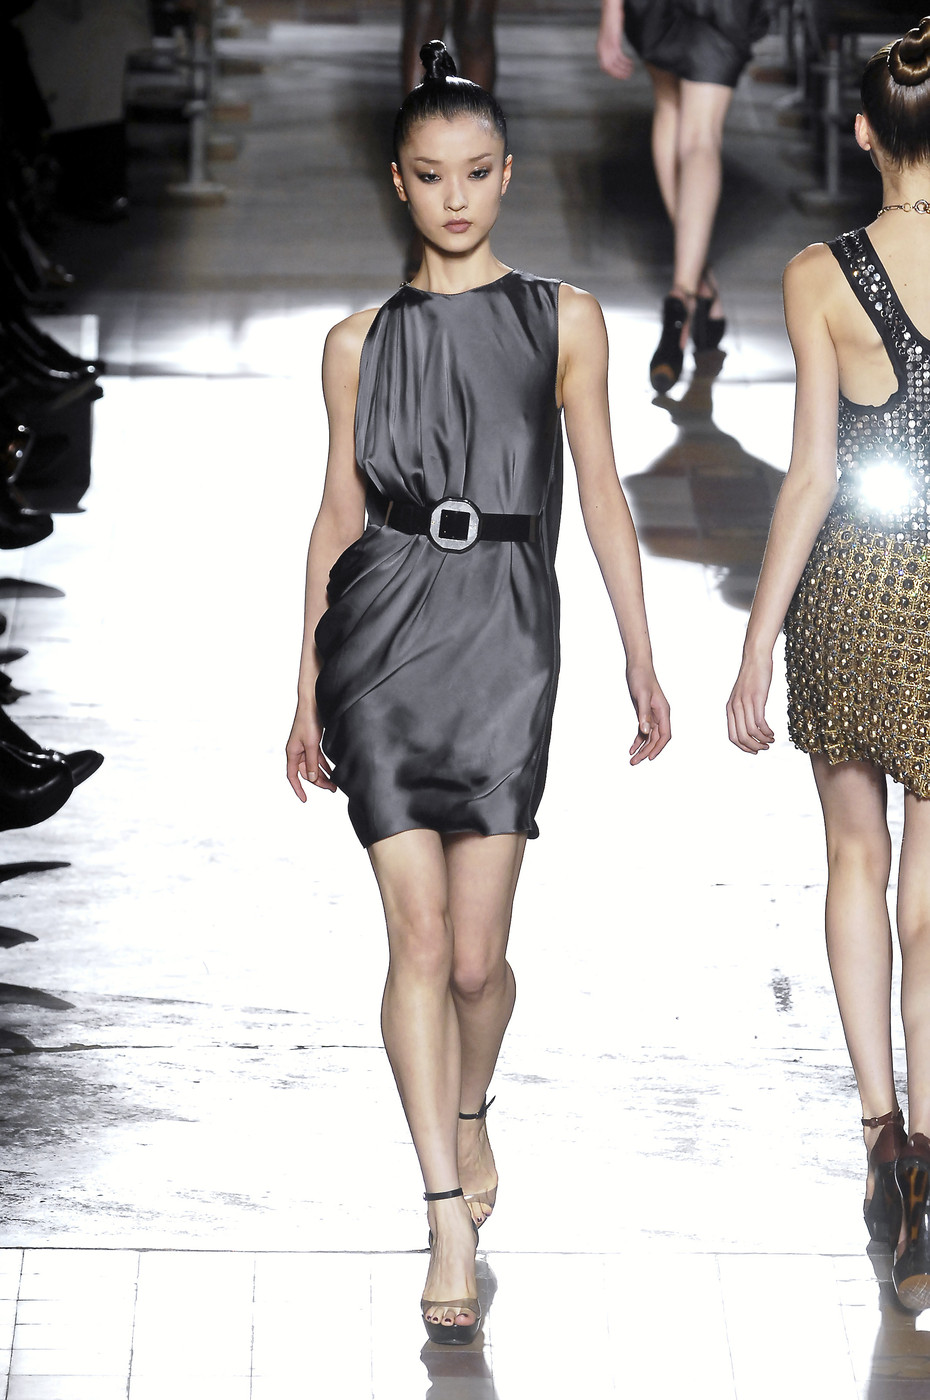 via fashioned by love | Spring/Summer 2007